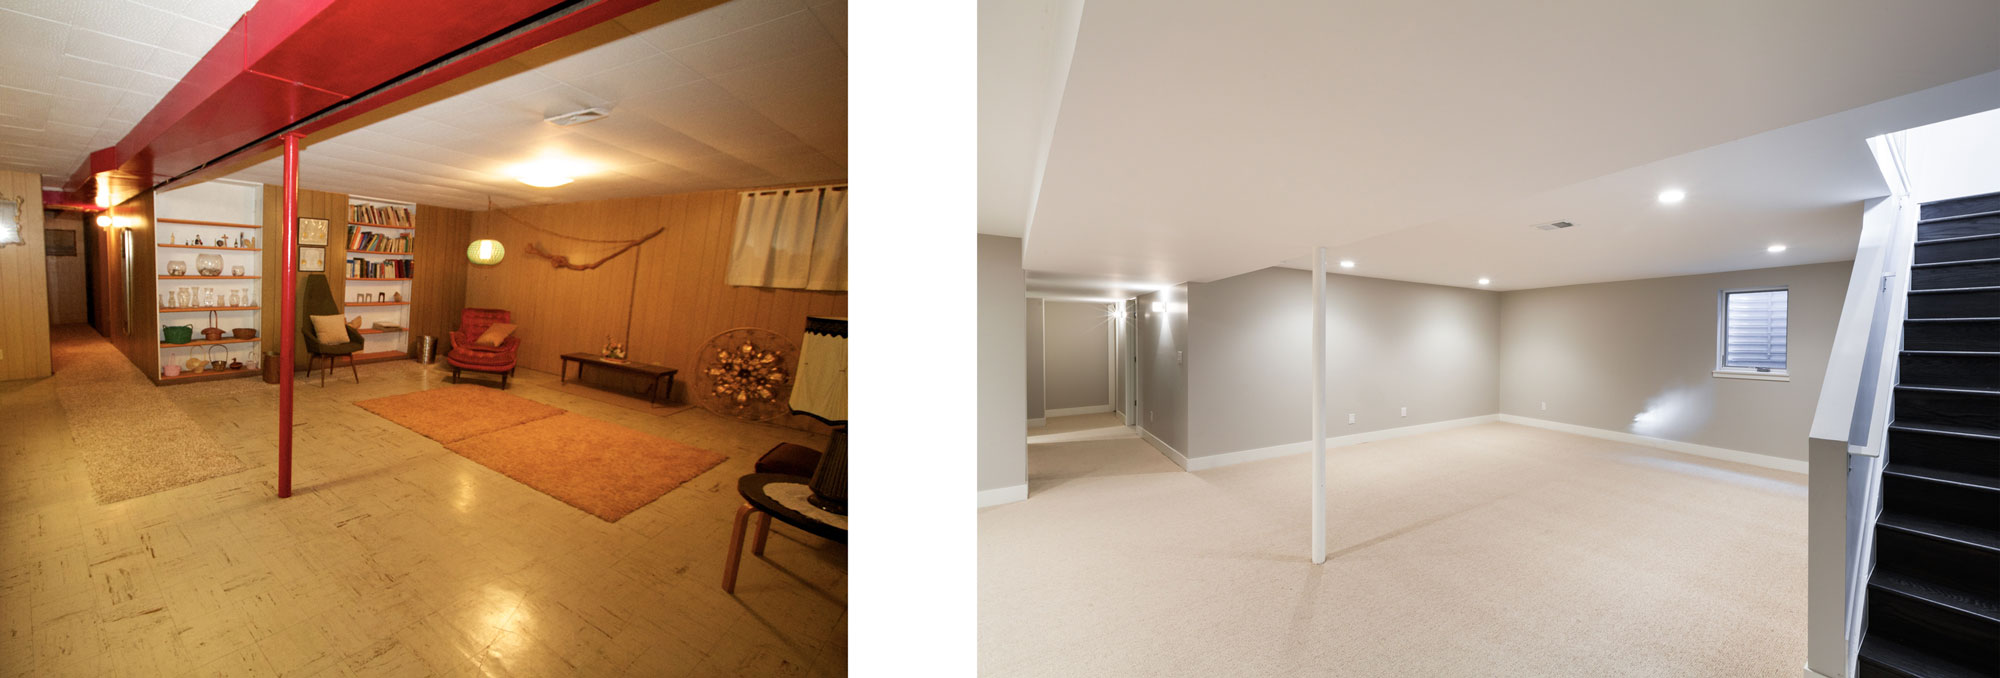 Basement-Overall-before-after.jpg